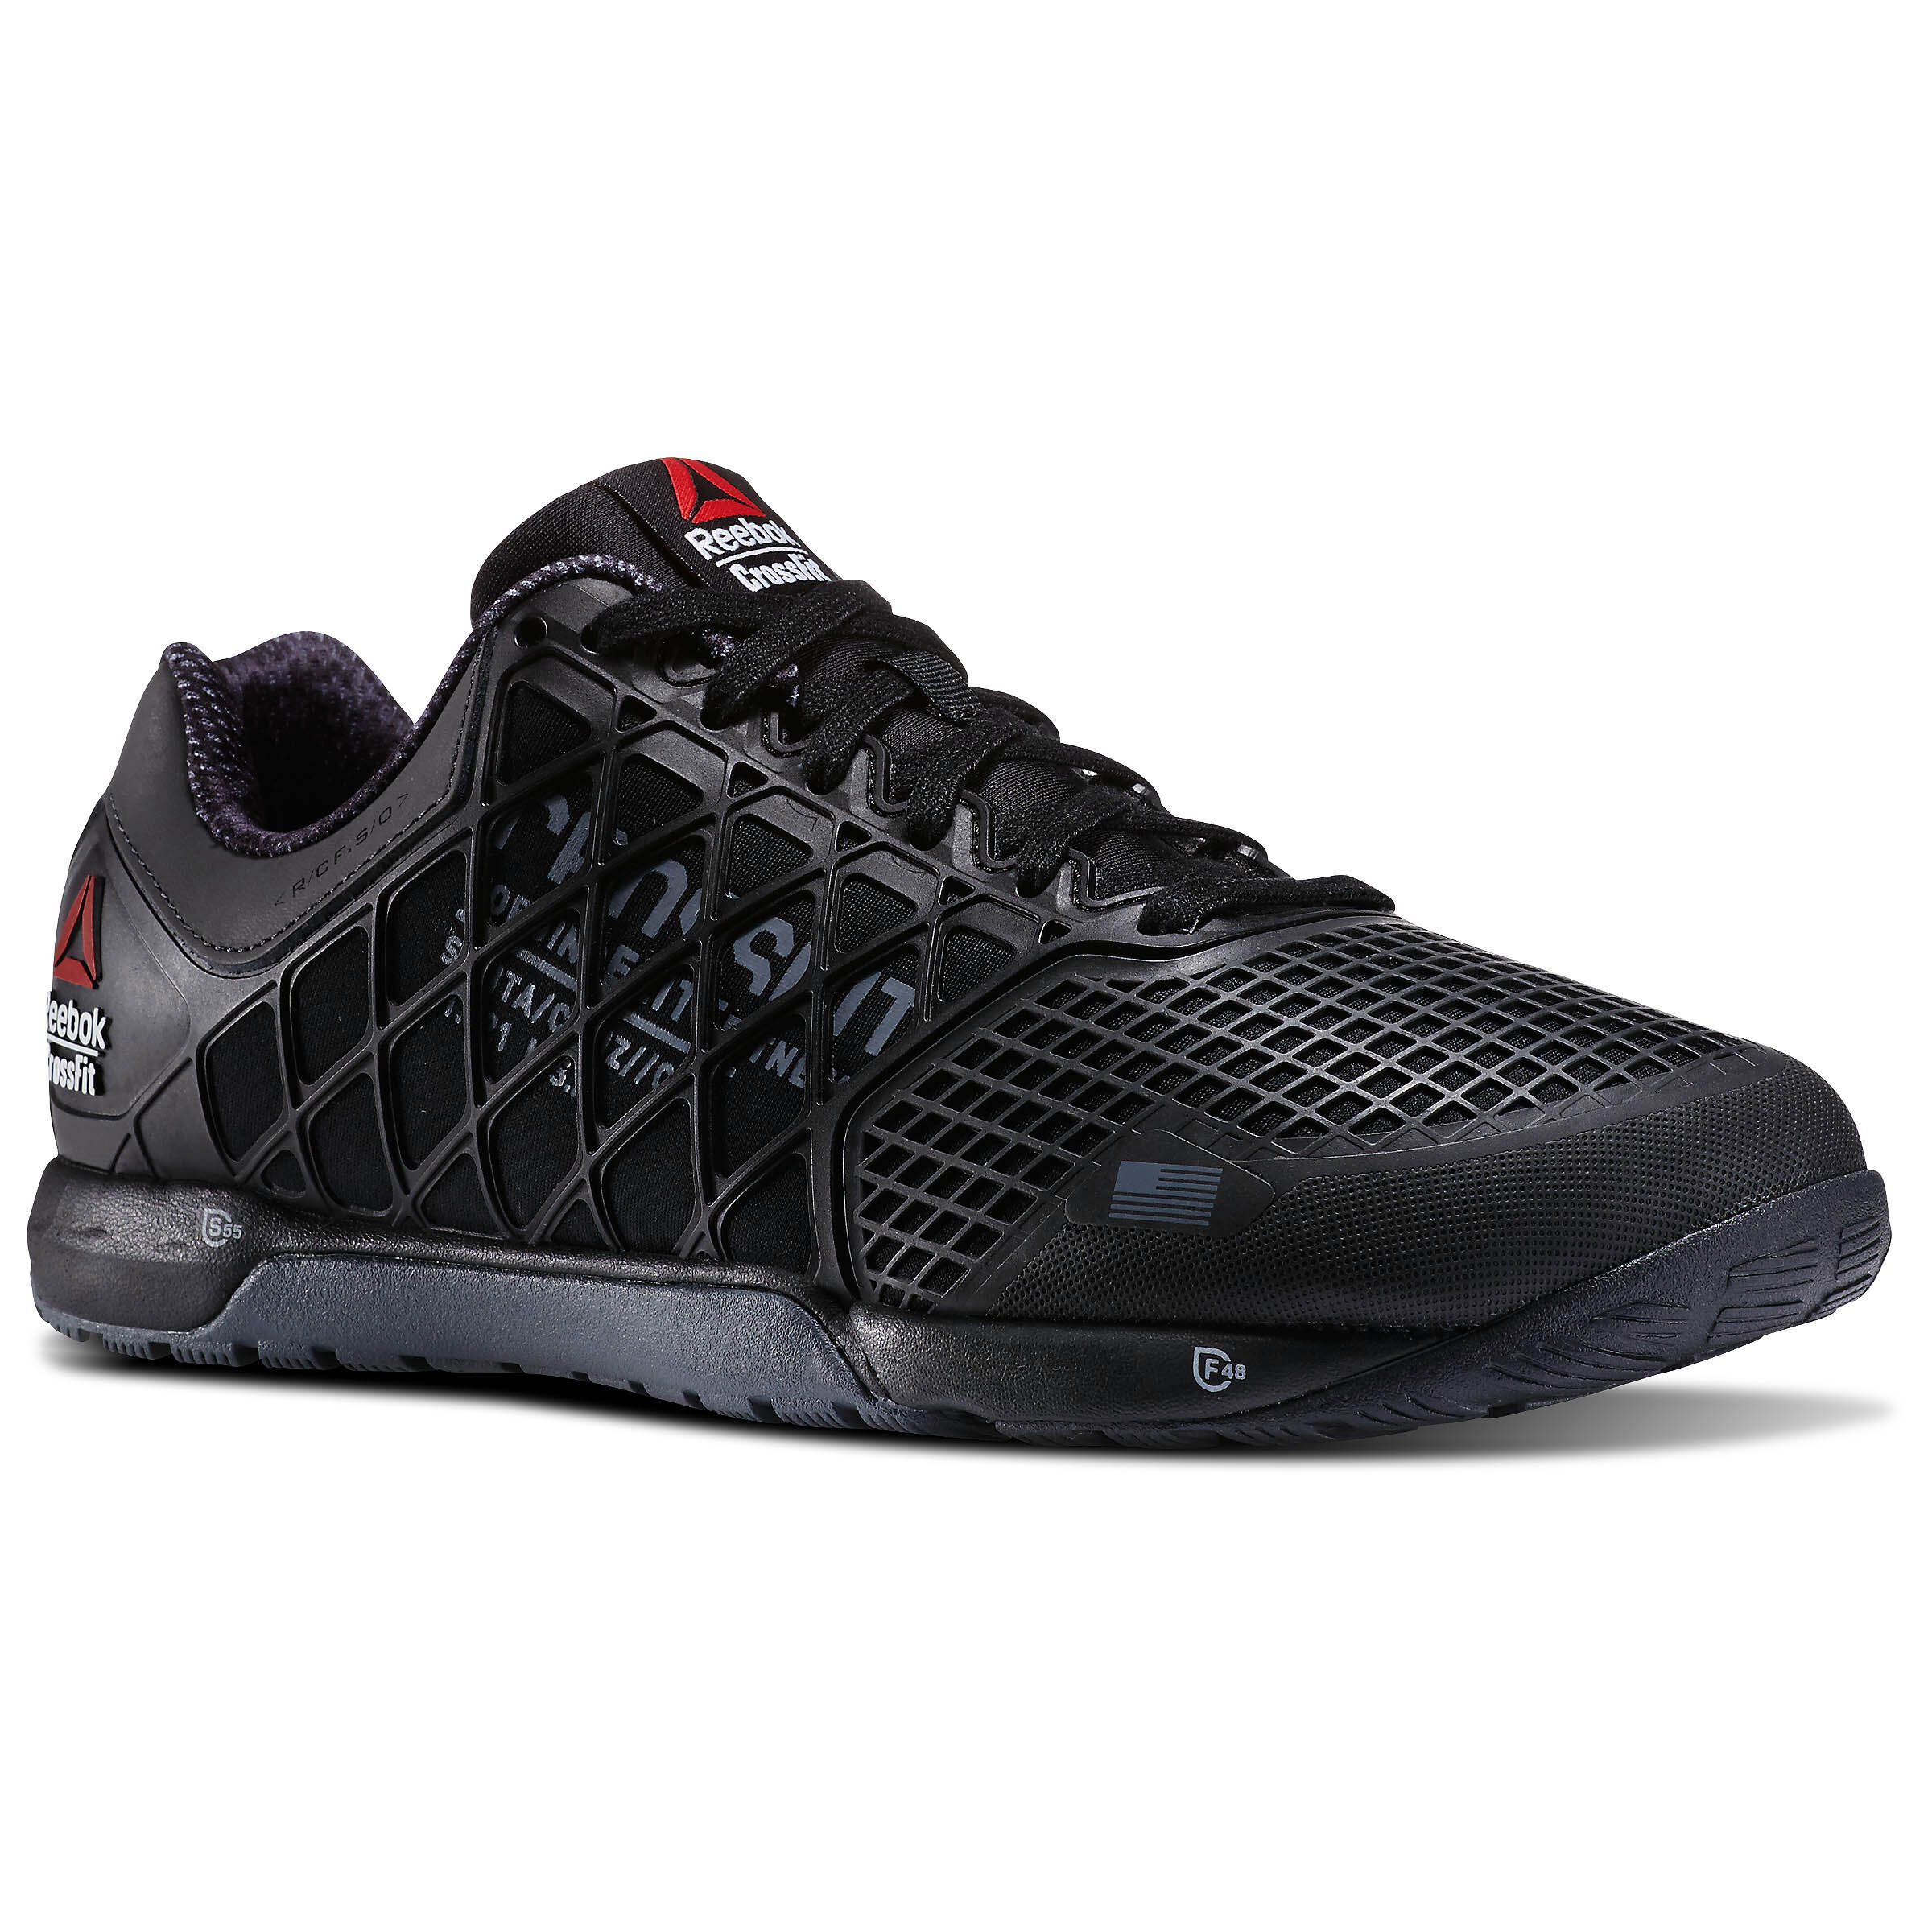 CrossFit Men's Black Reebok Honor Pack Nano 4.0 - N - 11